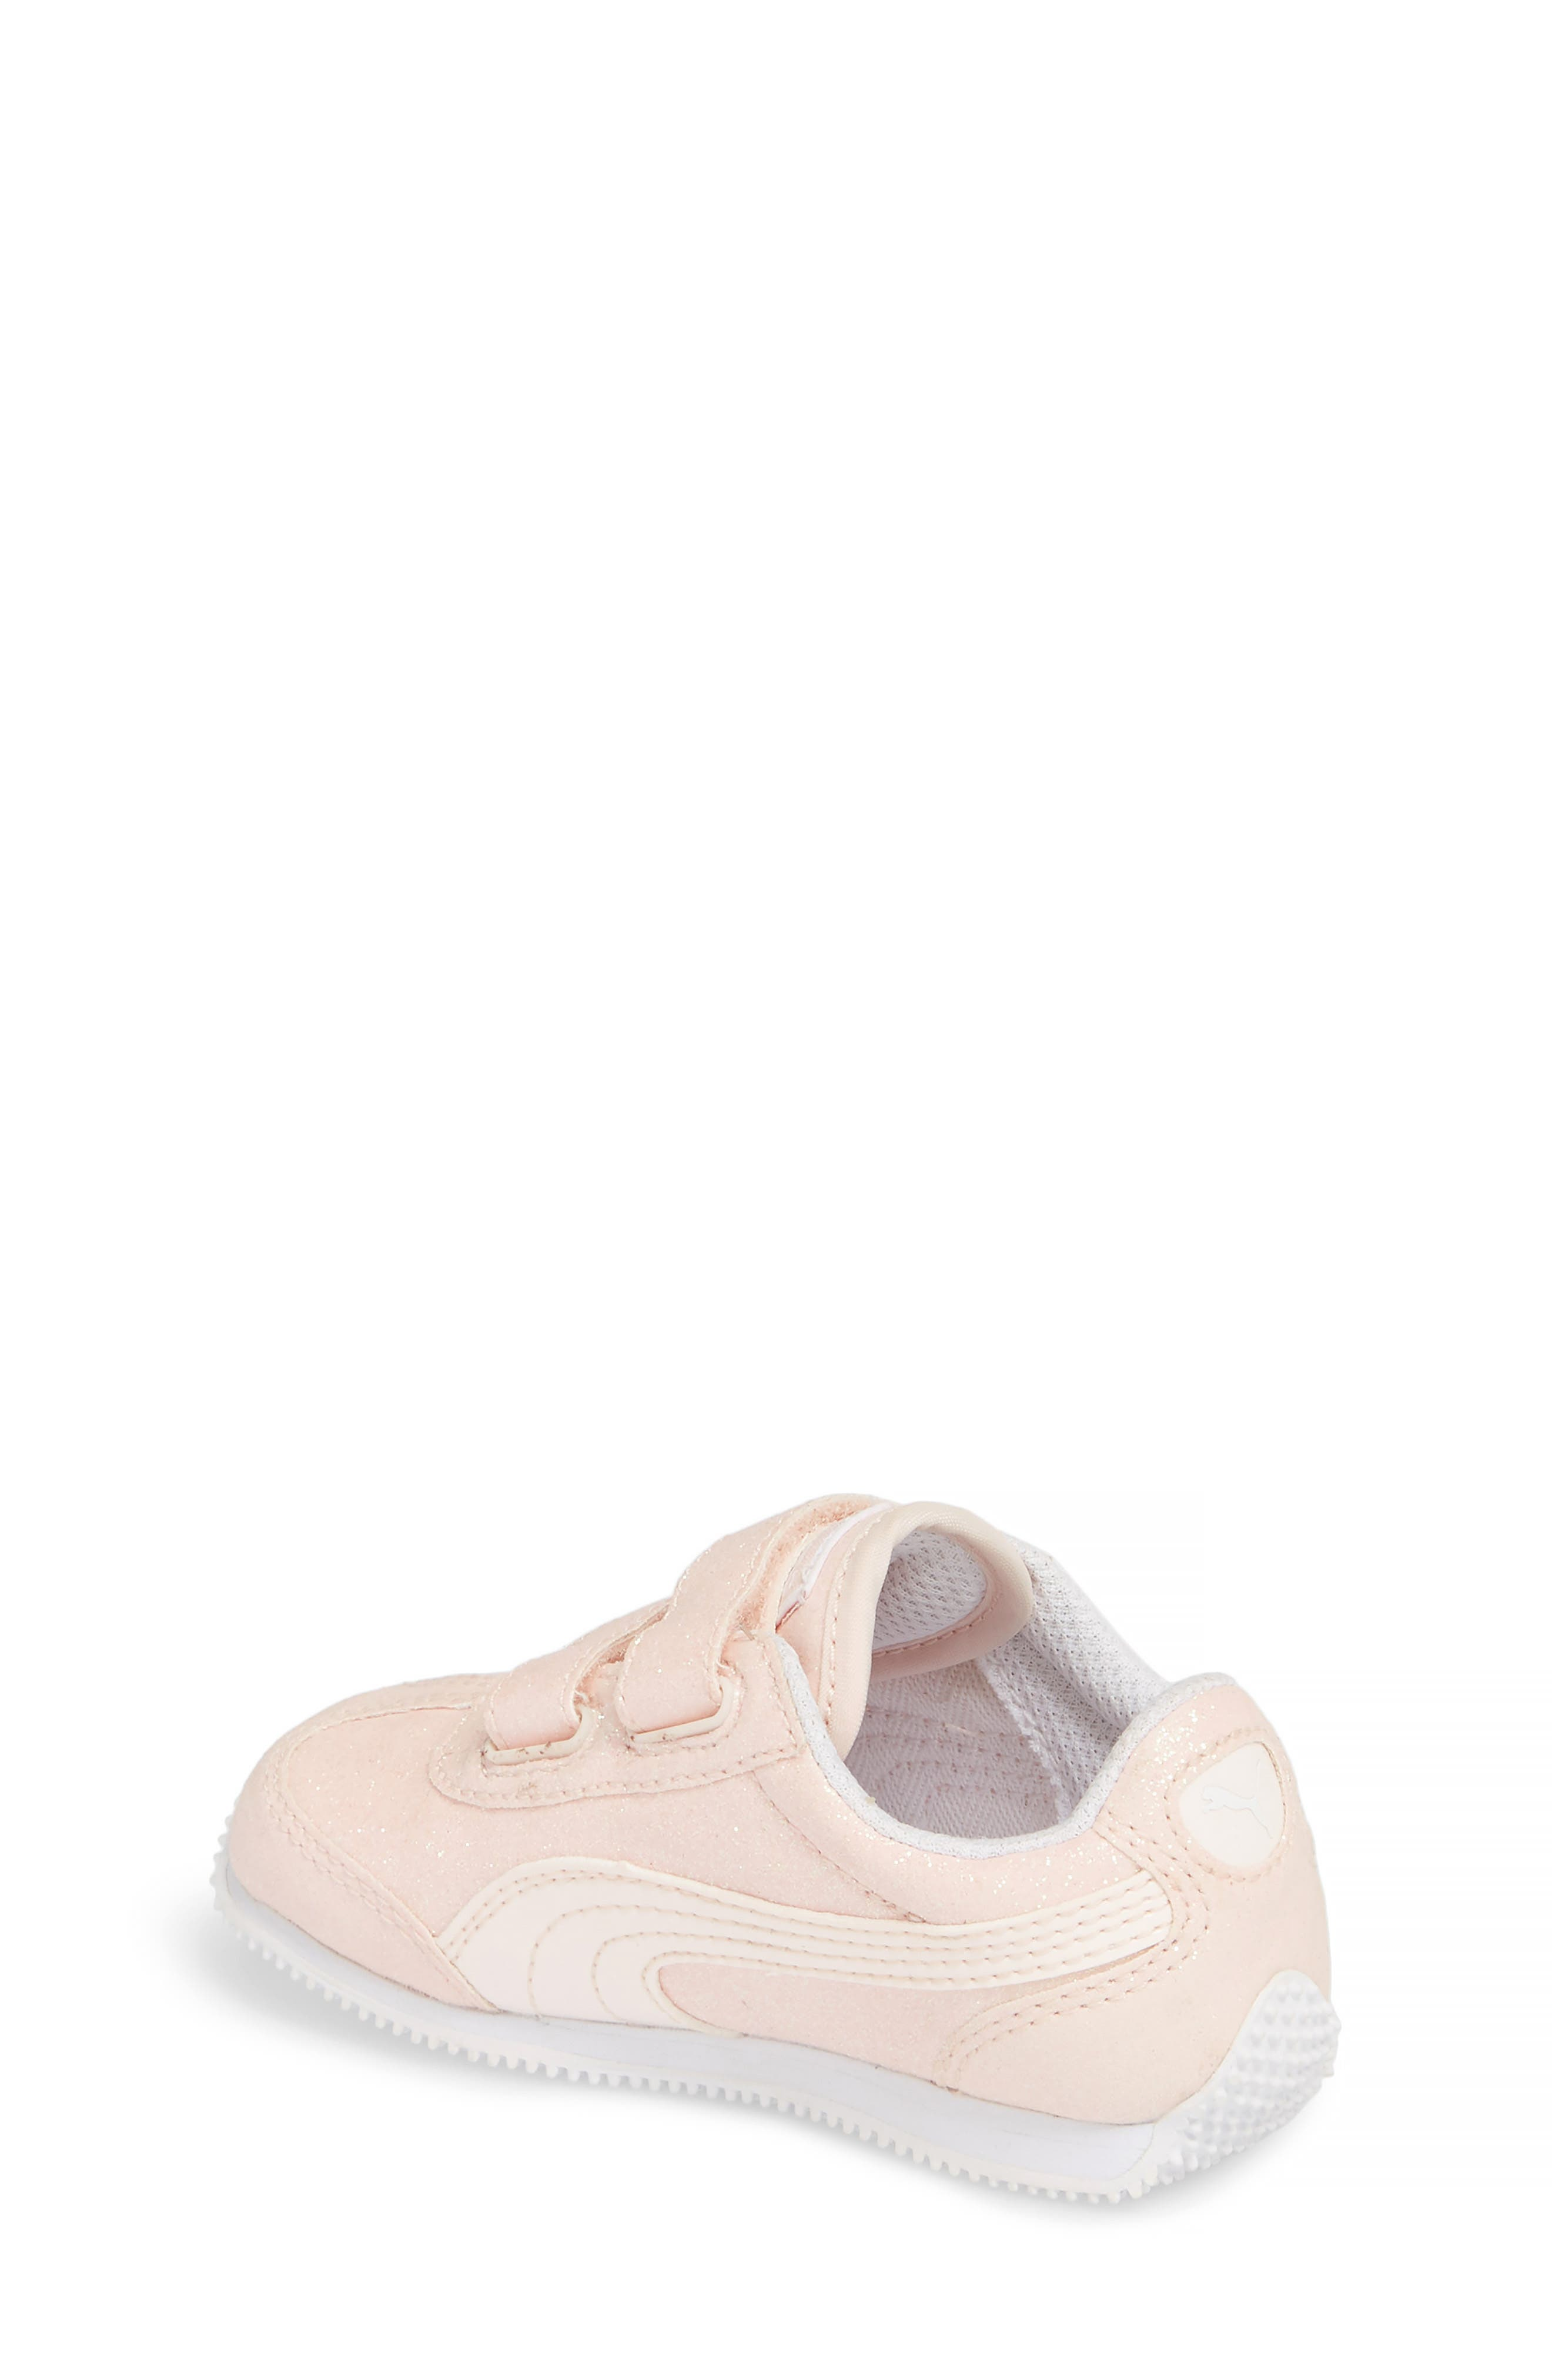 Whirlwind Glitz Sneaker,                             Alternate thumbnail 2, color,                             Pearl/ Puma White